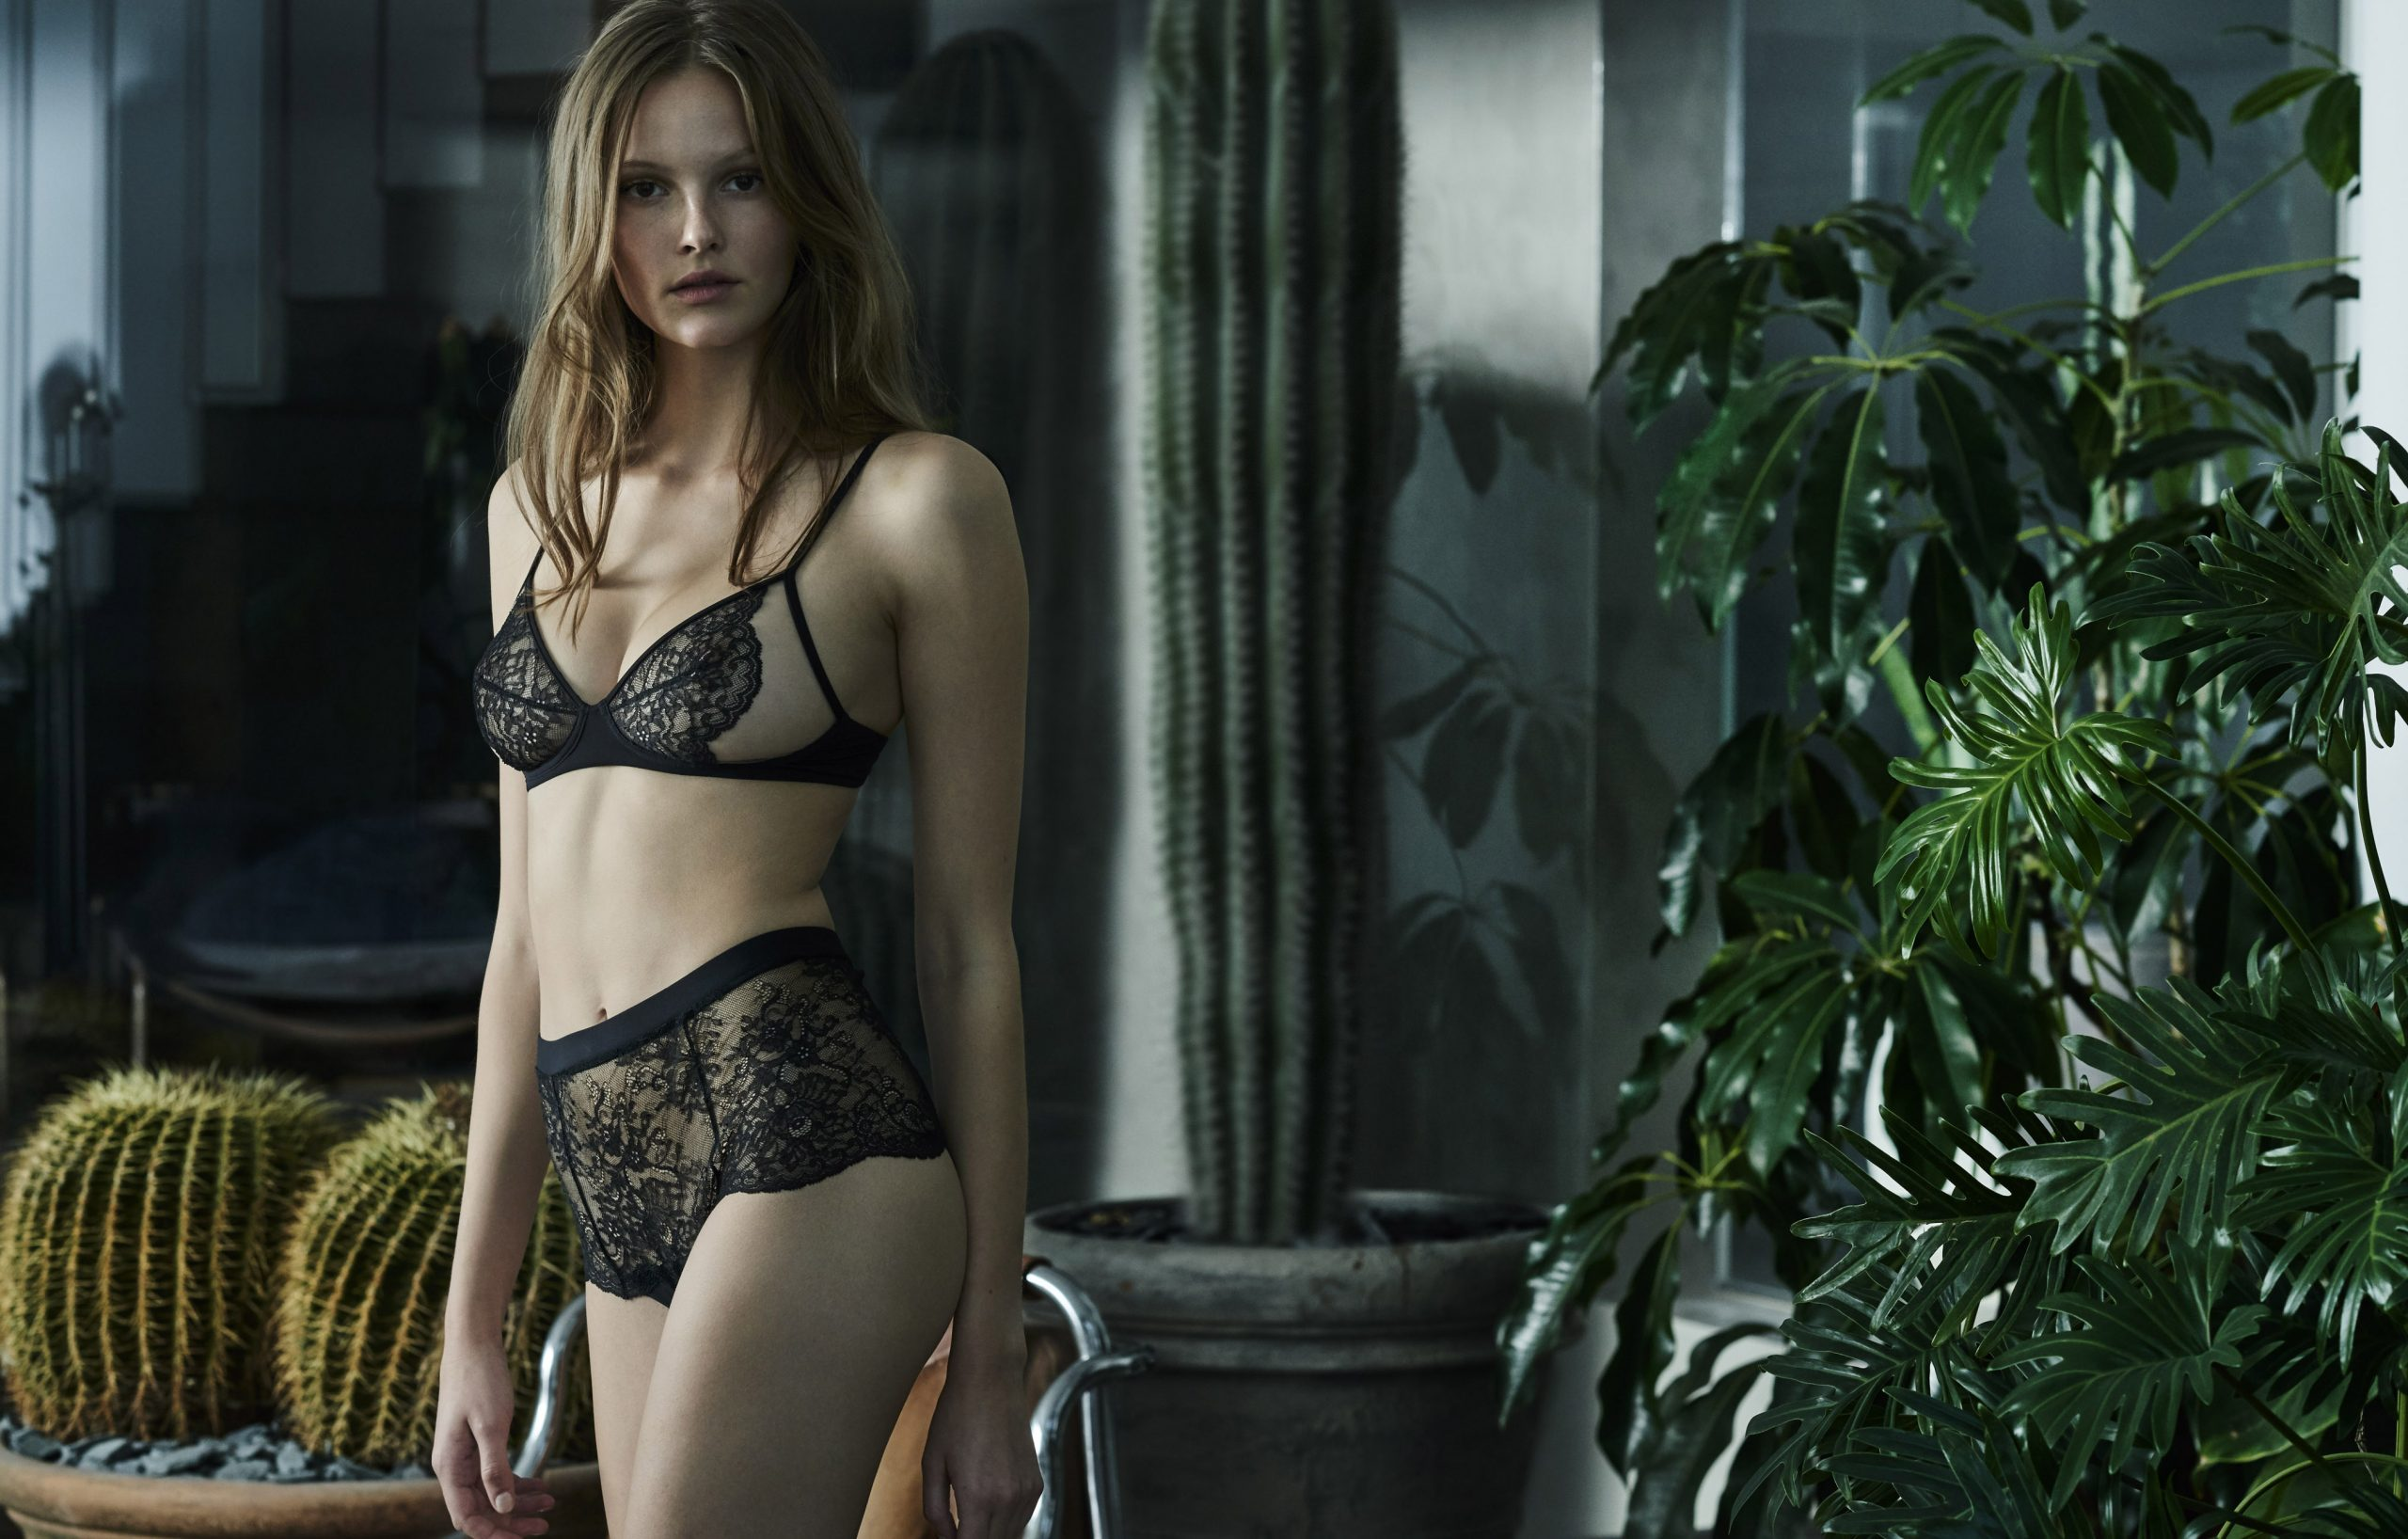 Kendall Jenner Wears Lingerie In Steamy New La Perla Ads Racy Campaign Images